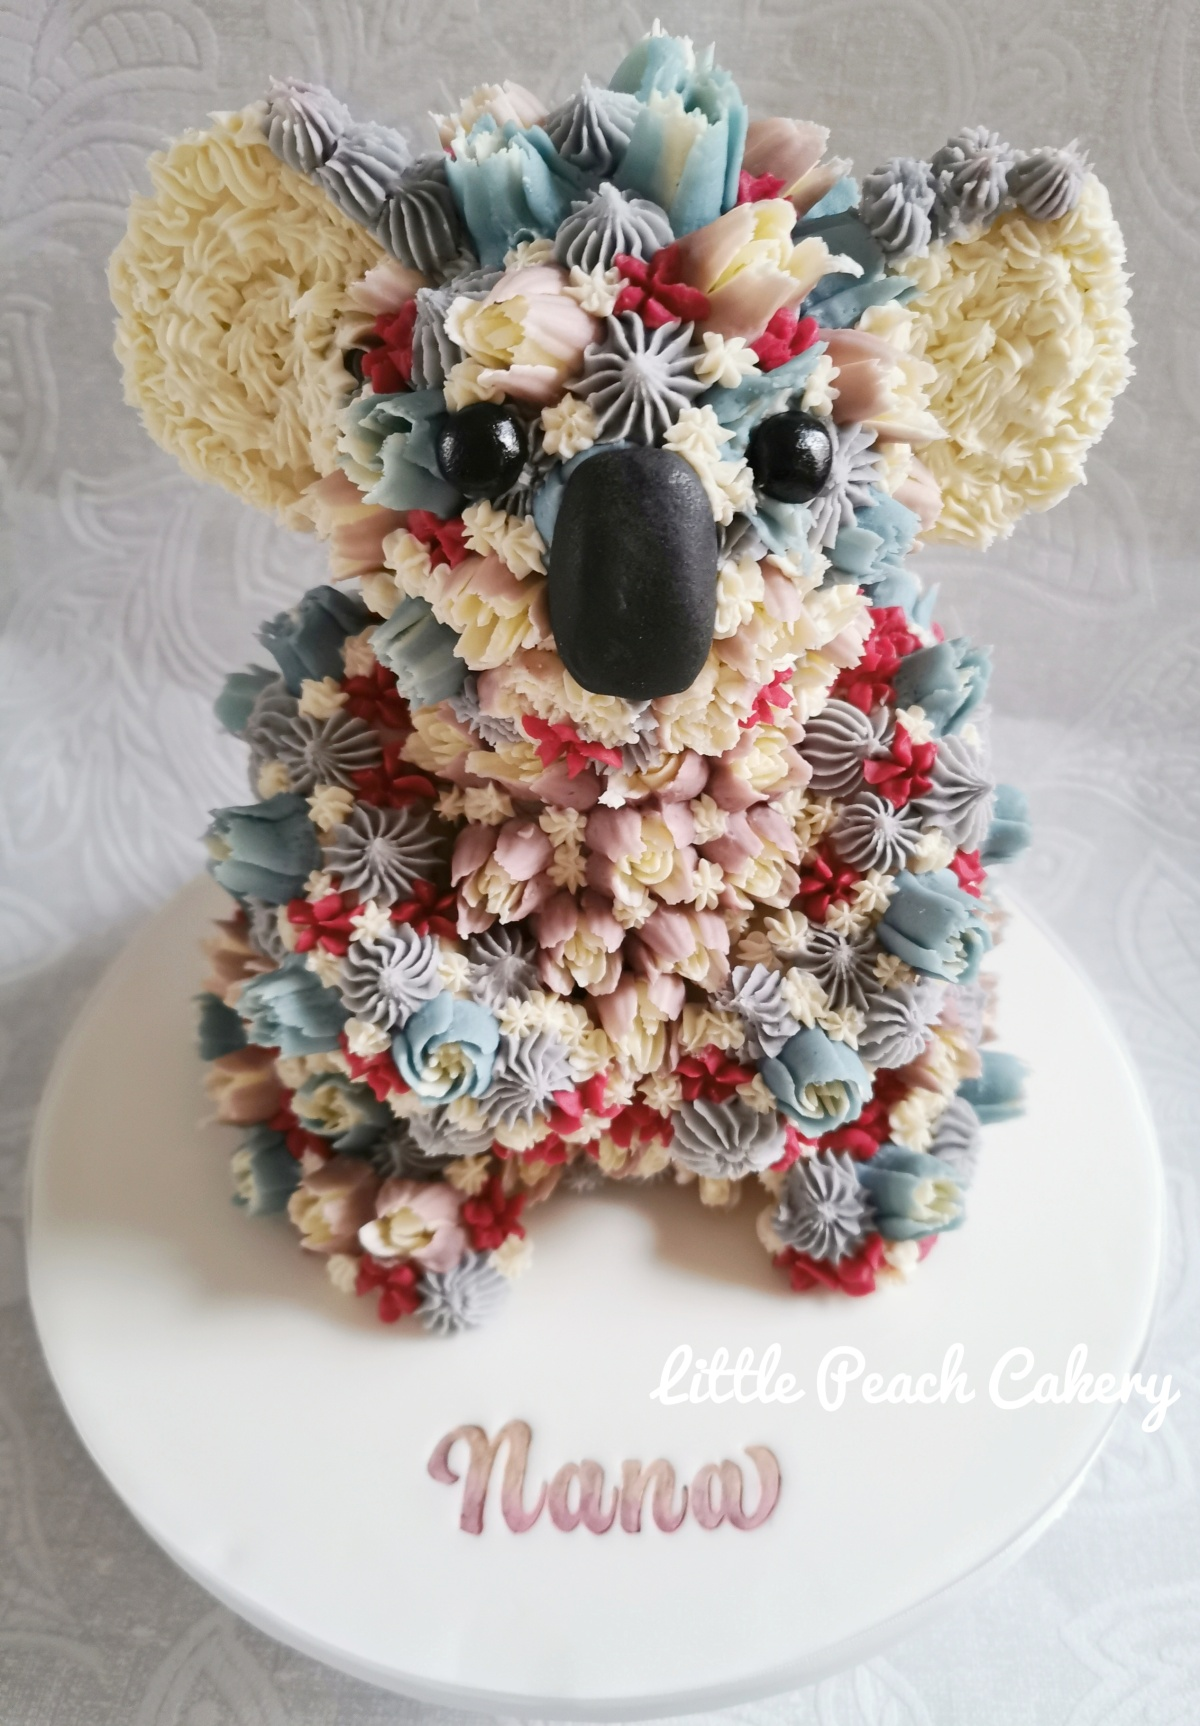 Koala cake with buttercream flowers